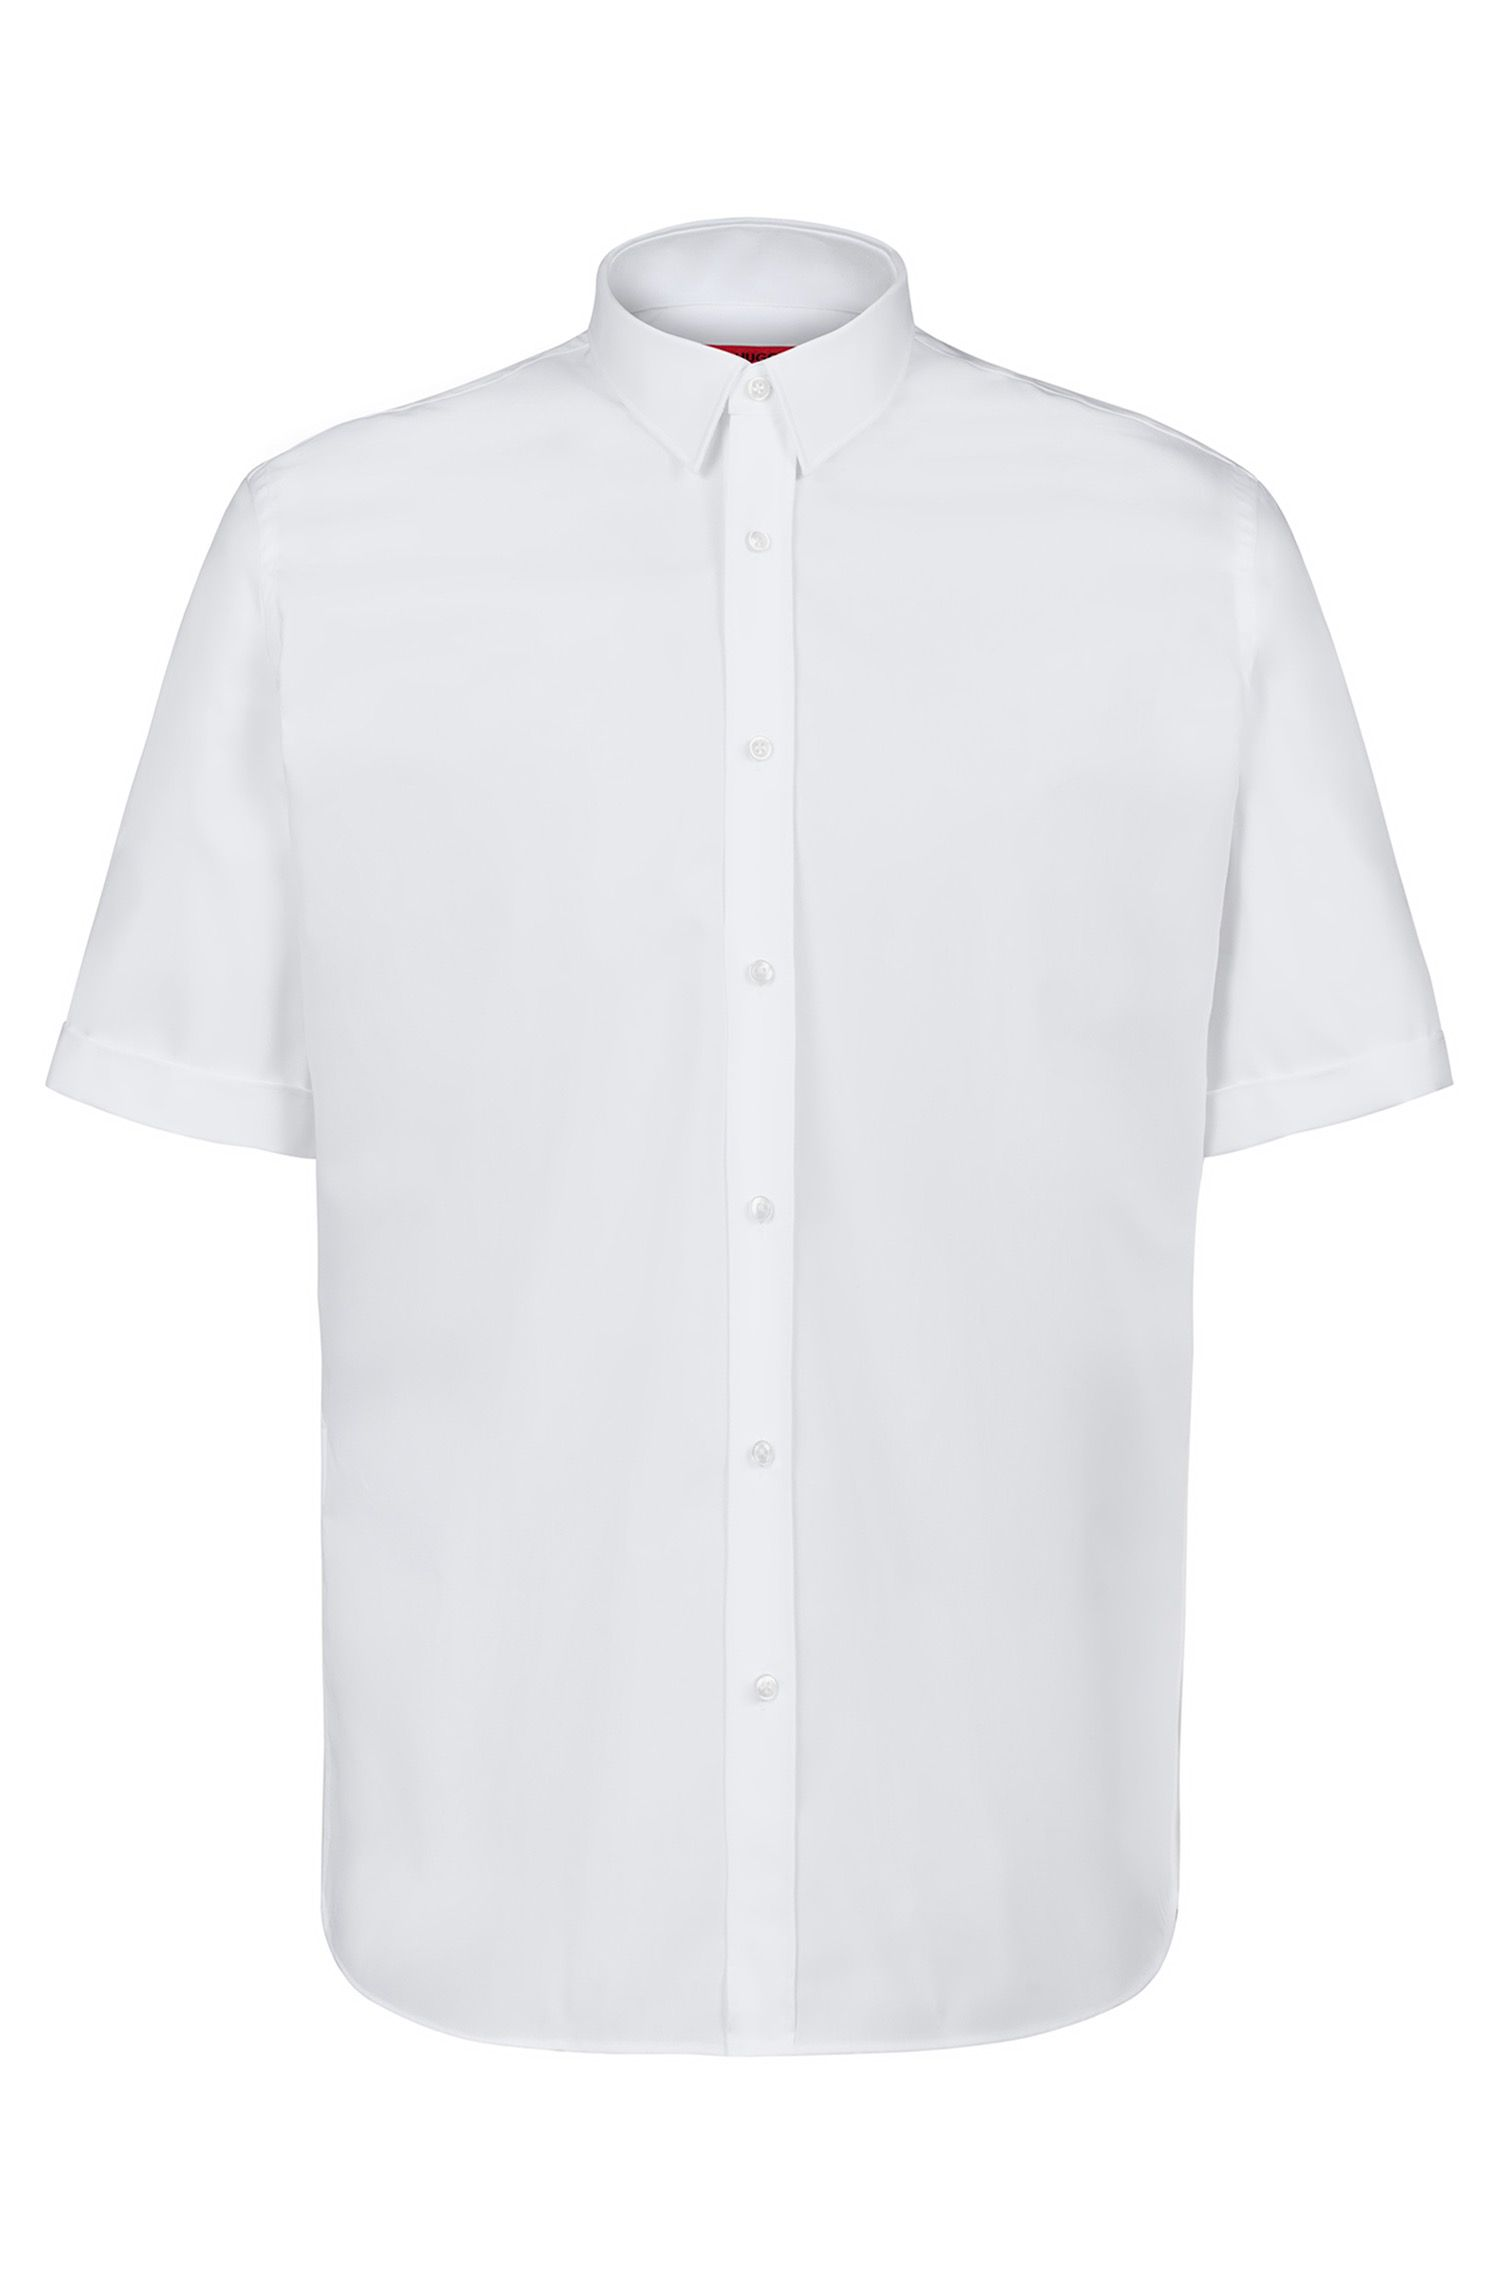 Short-sleeved business shirt in cotton poplin, Open White